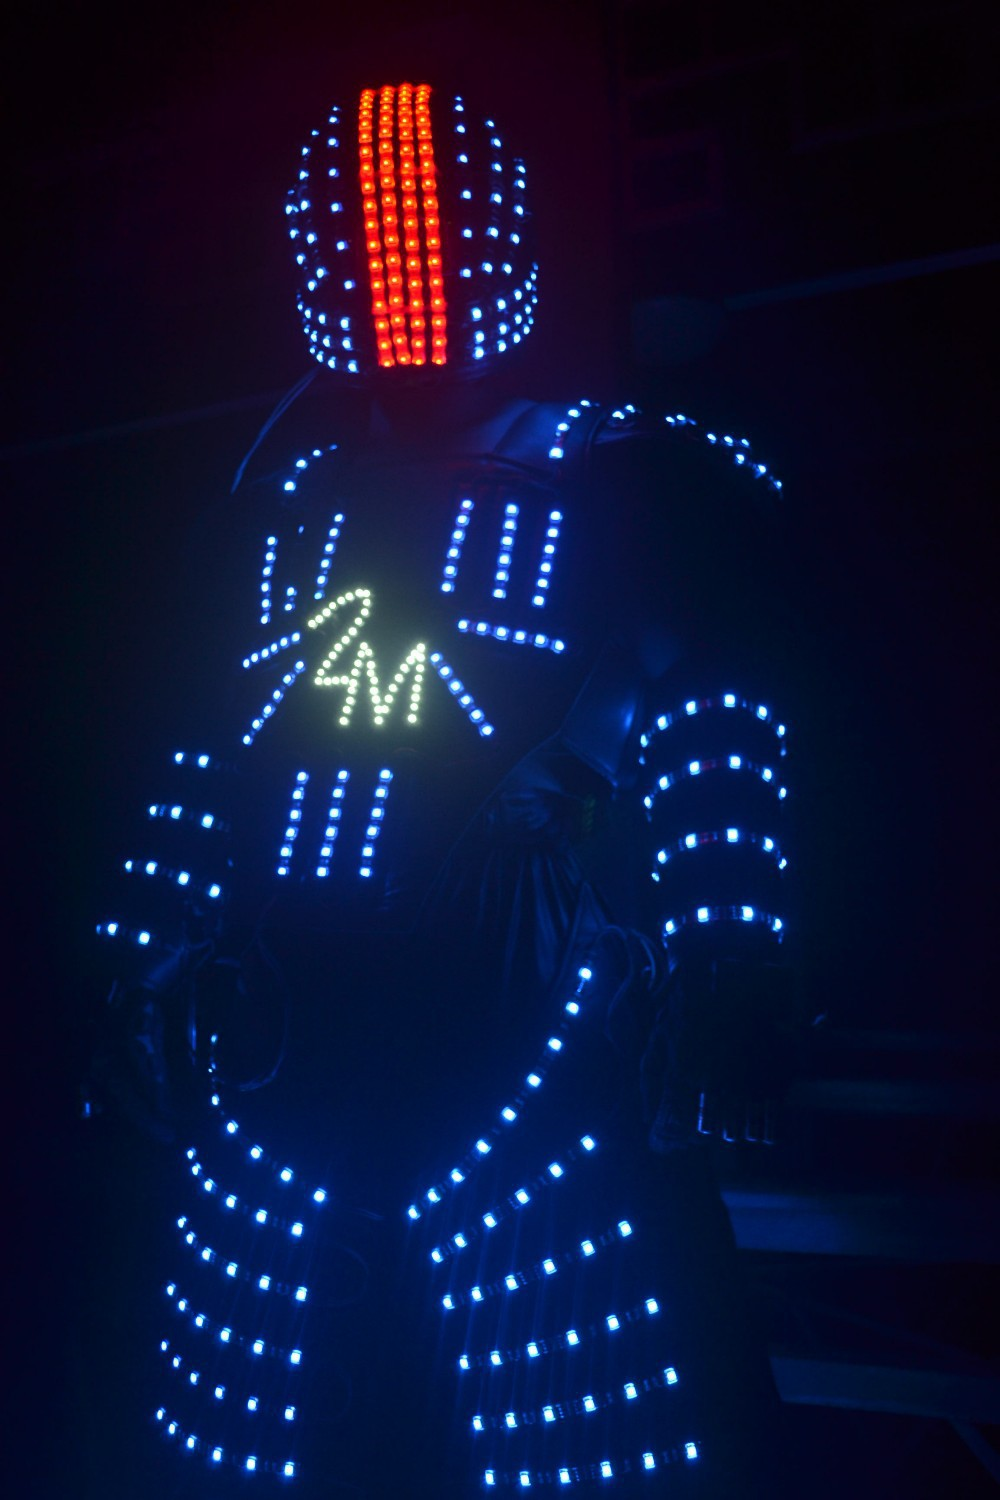 robot suit led clothing dance men interstellar robot luminous costumes show halloween mardi gras carnival science - Halloween Led Costume